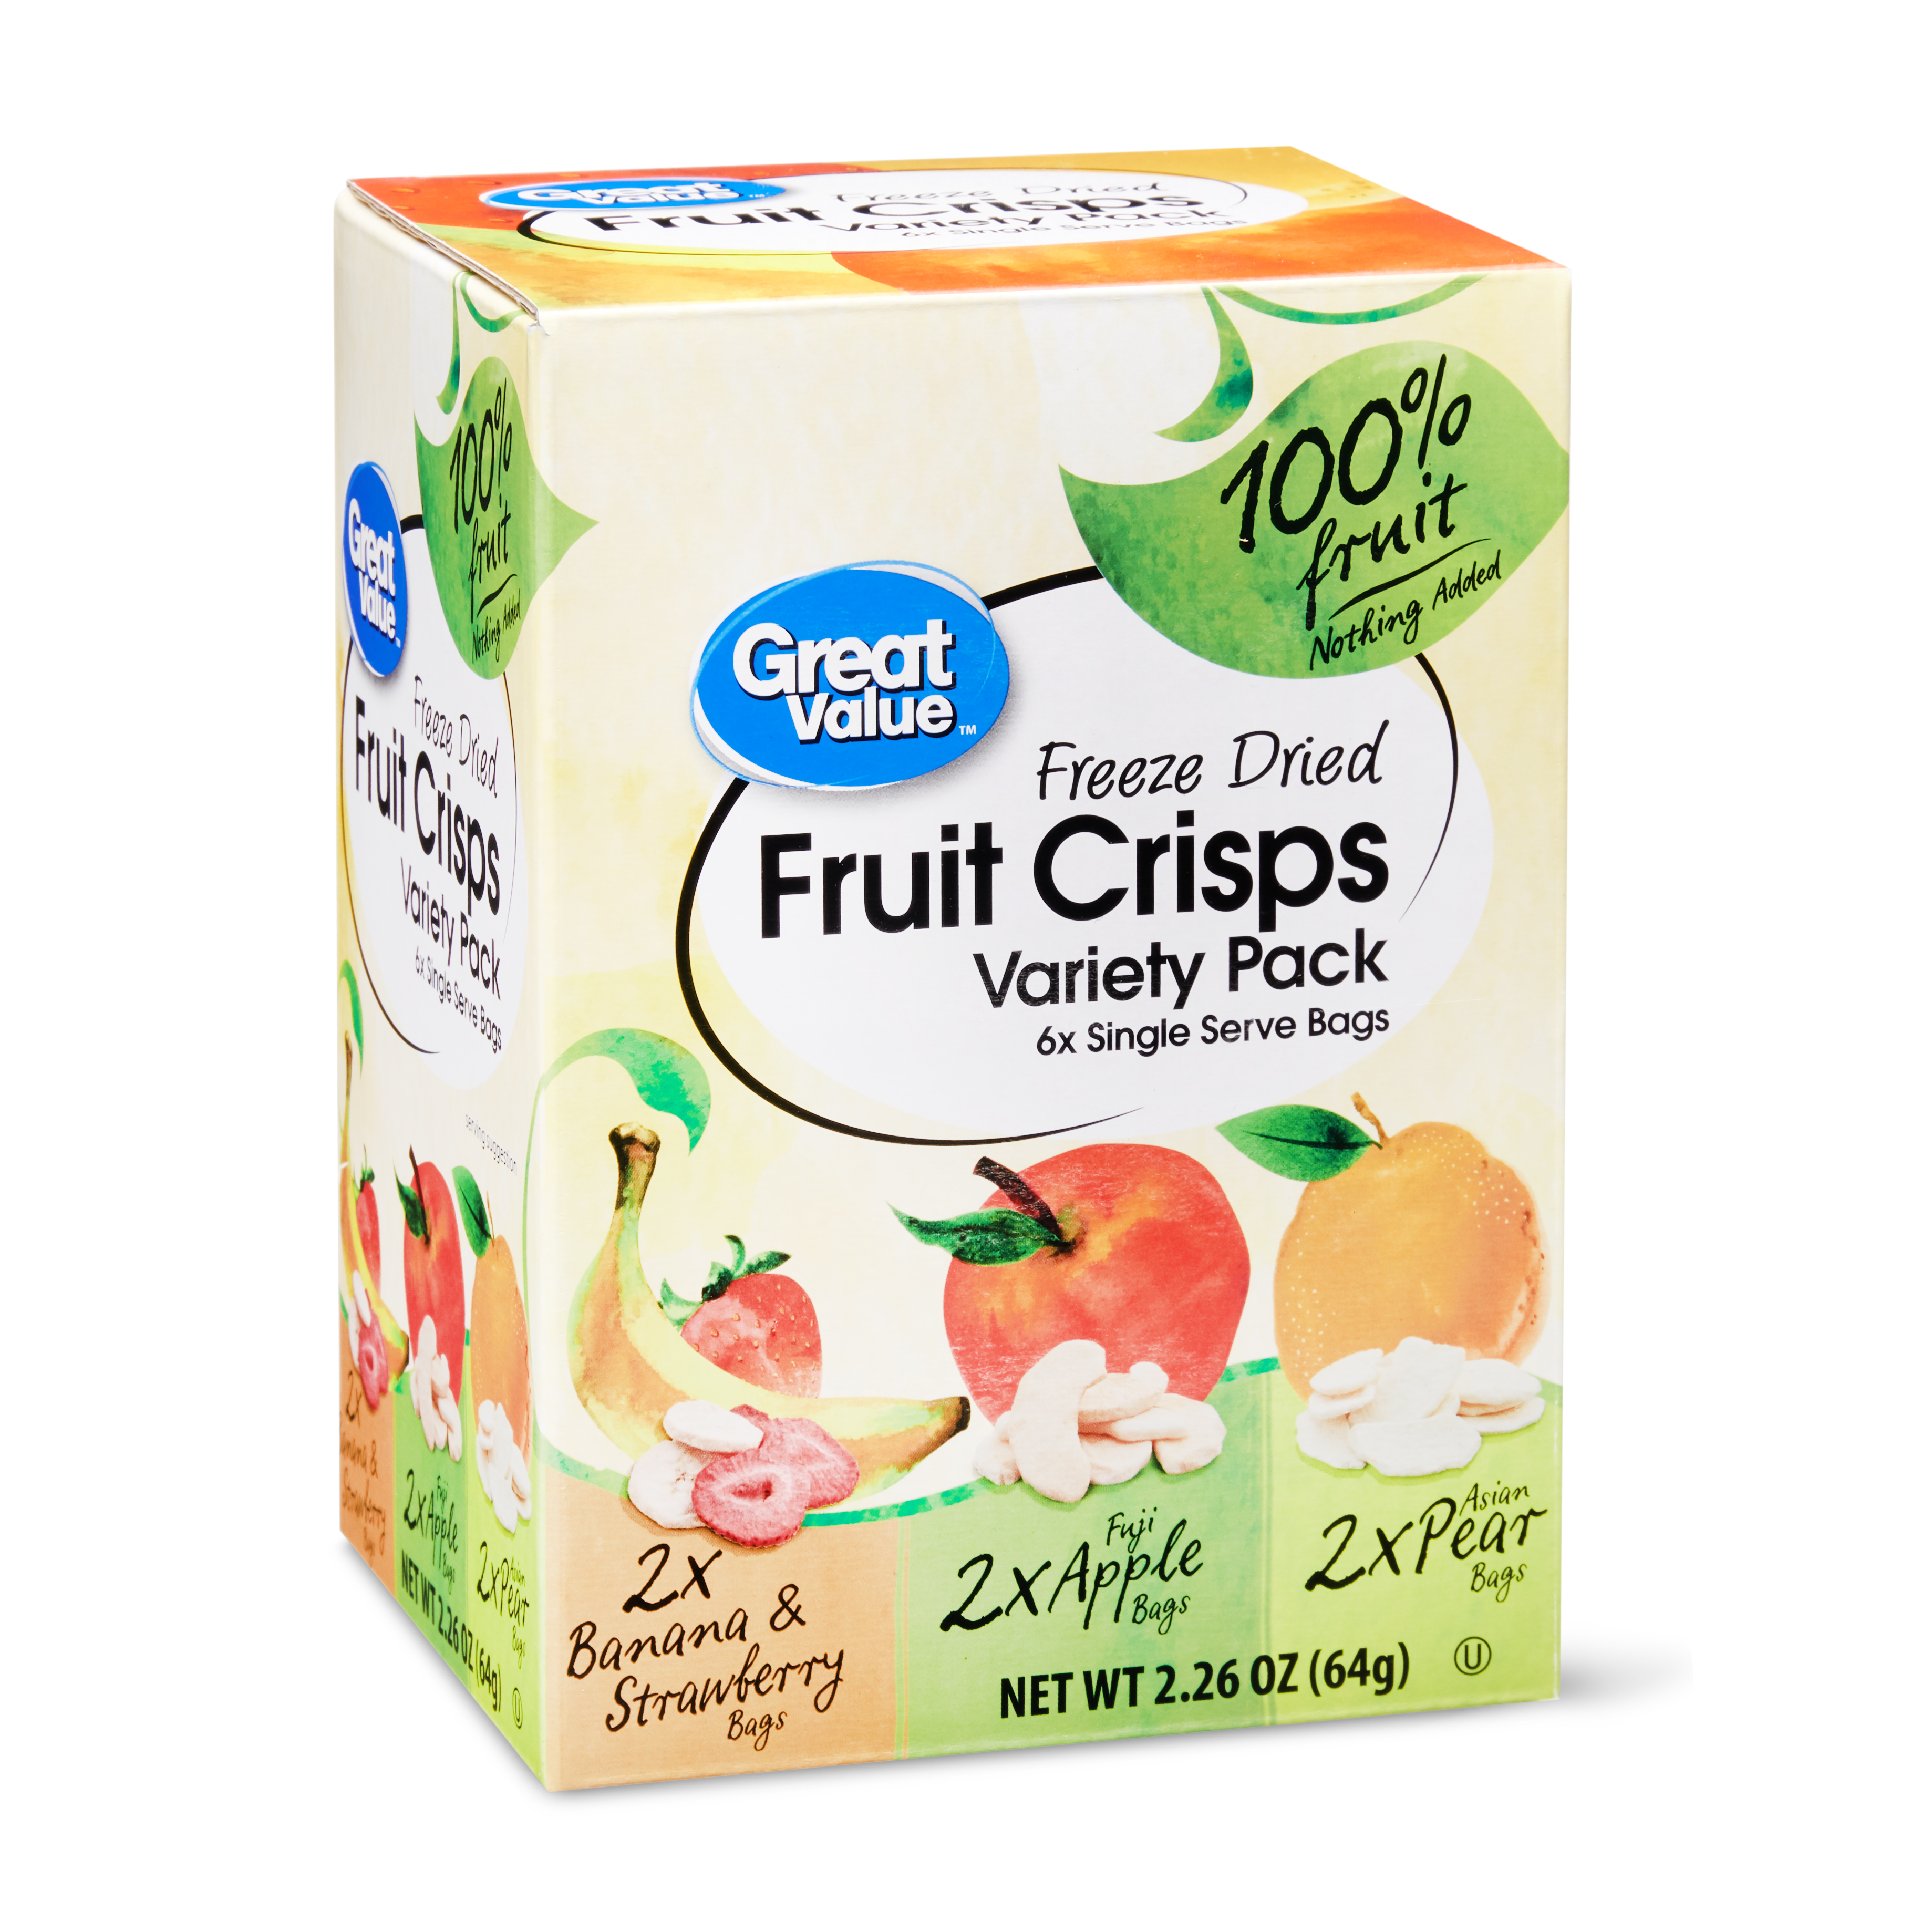 Great Value Freeze-Dried Fruit Crisps Variety Pack, 2.26 Oz., 6 Count